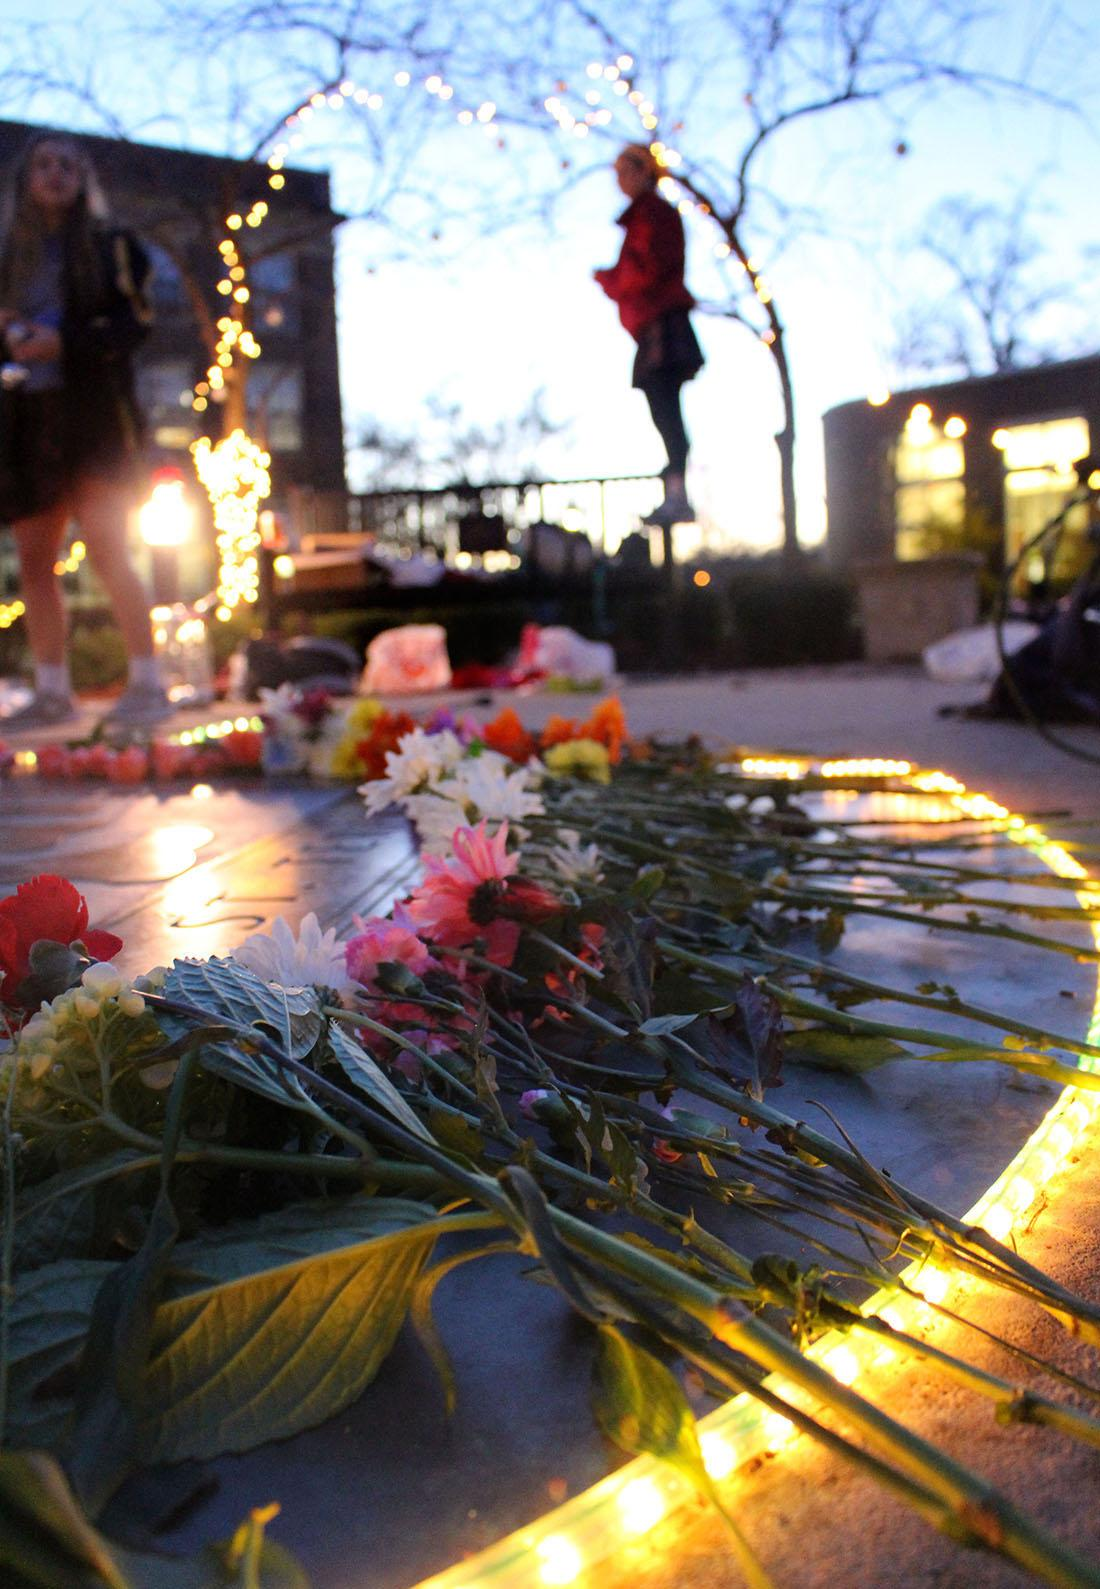 STA students gathered before school Wednesday Dec. 9 in honor of the two year anniversary of the death of STA alumna Becca Lueke. Flowers and pictures were placed on the seal in remembrance. photo by Kat Mediavilla